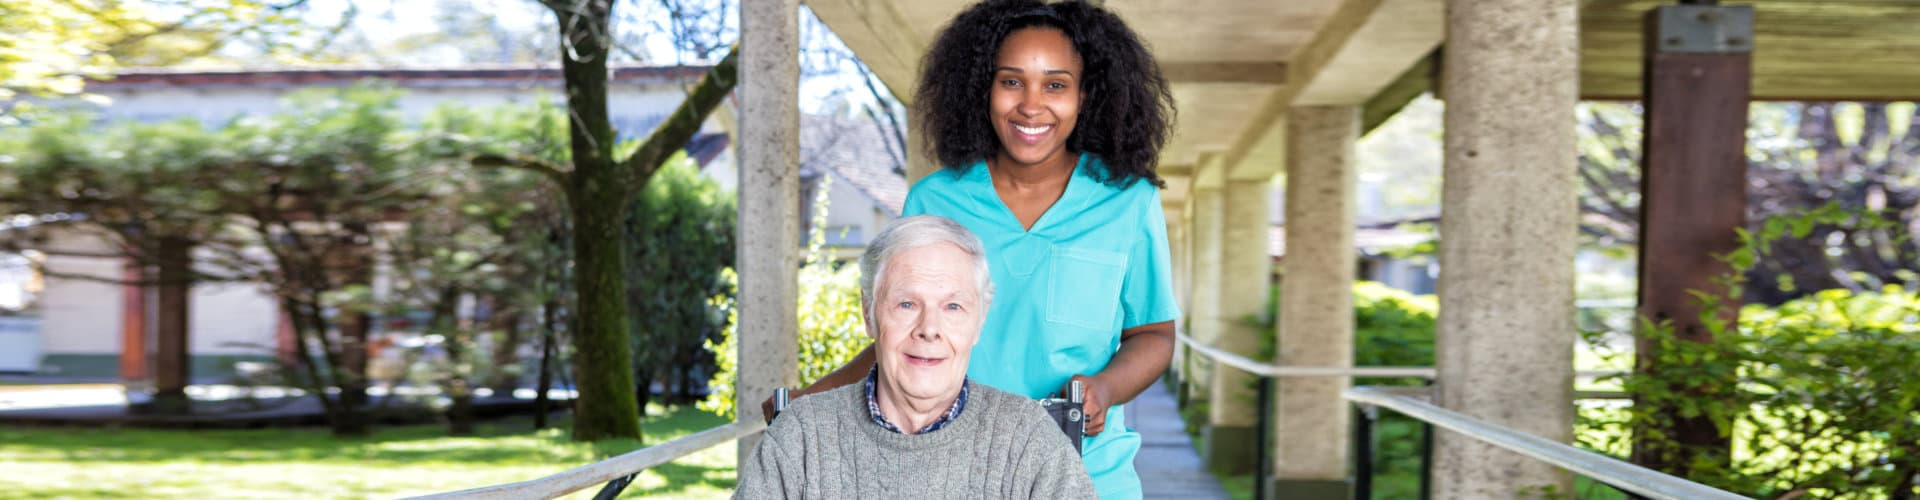 caregiver and senior in wheelchair smiling